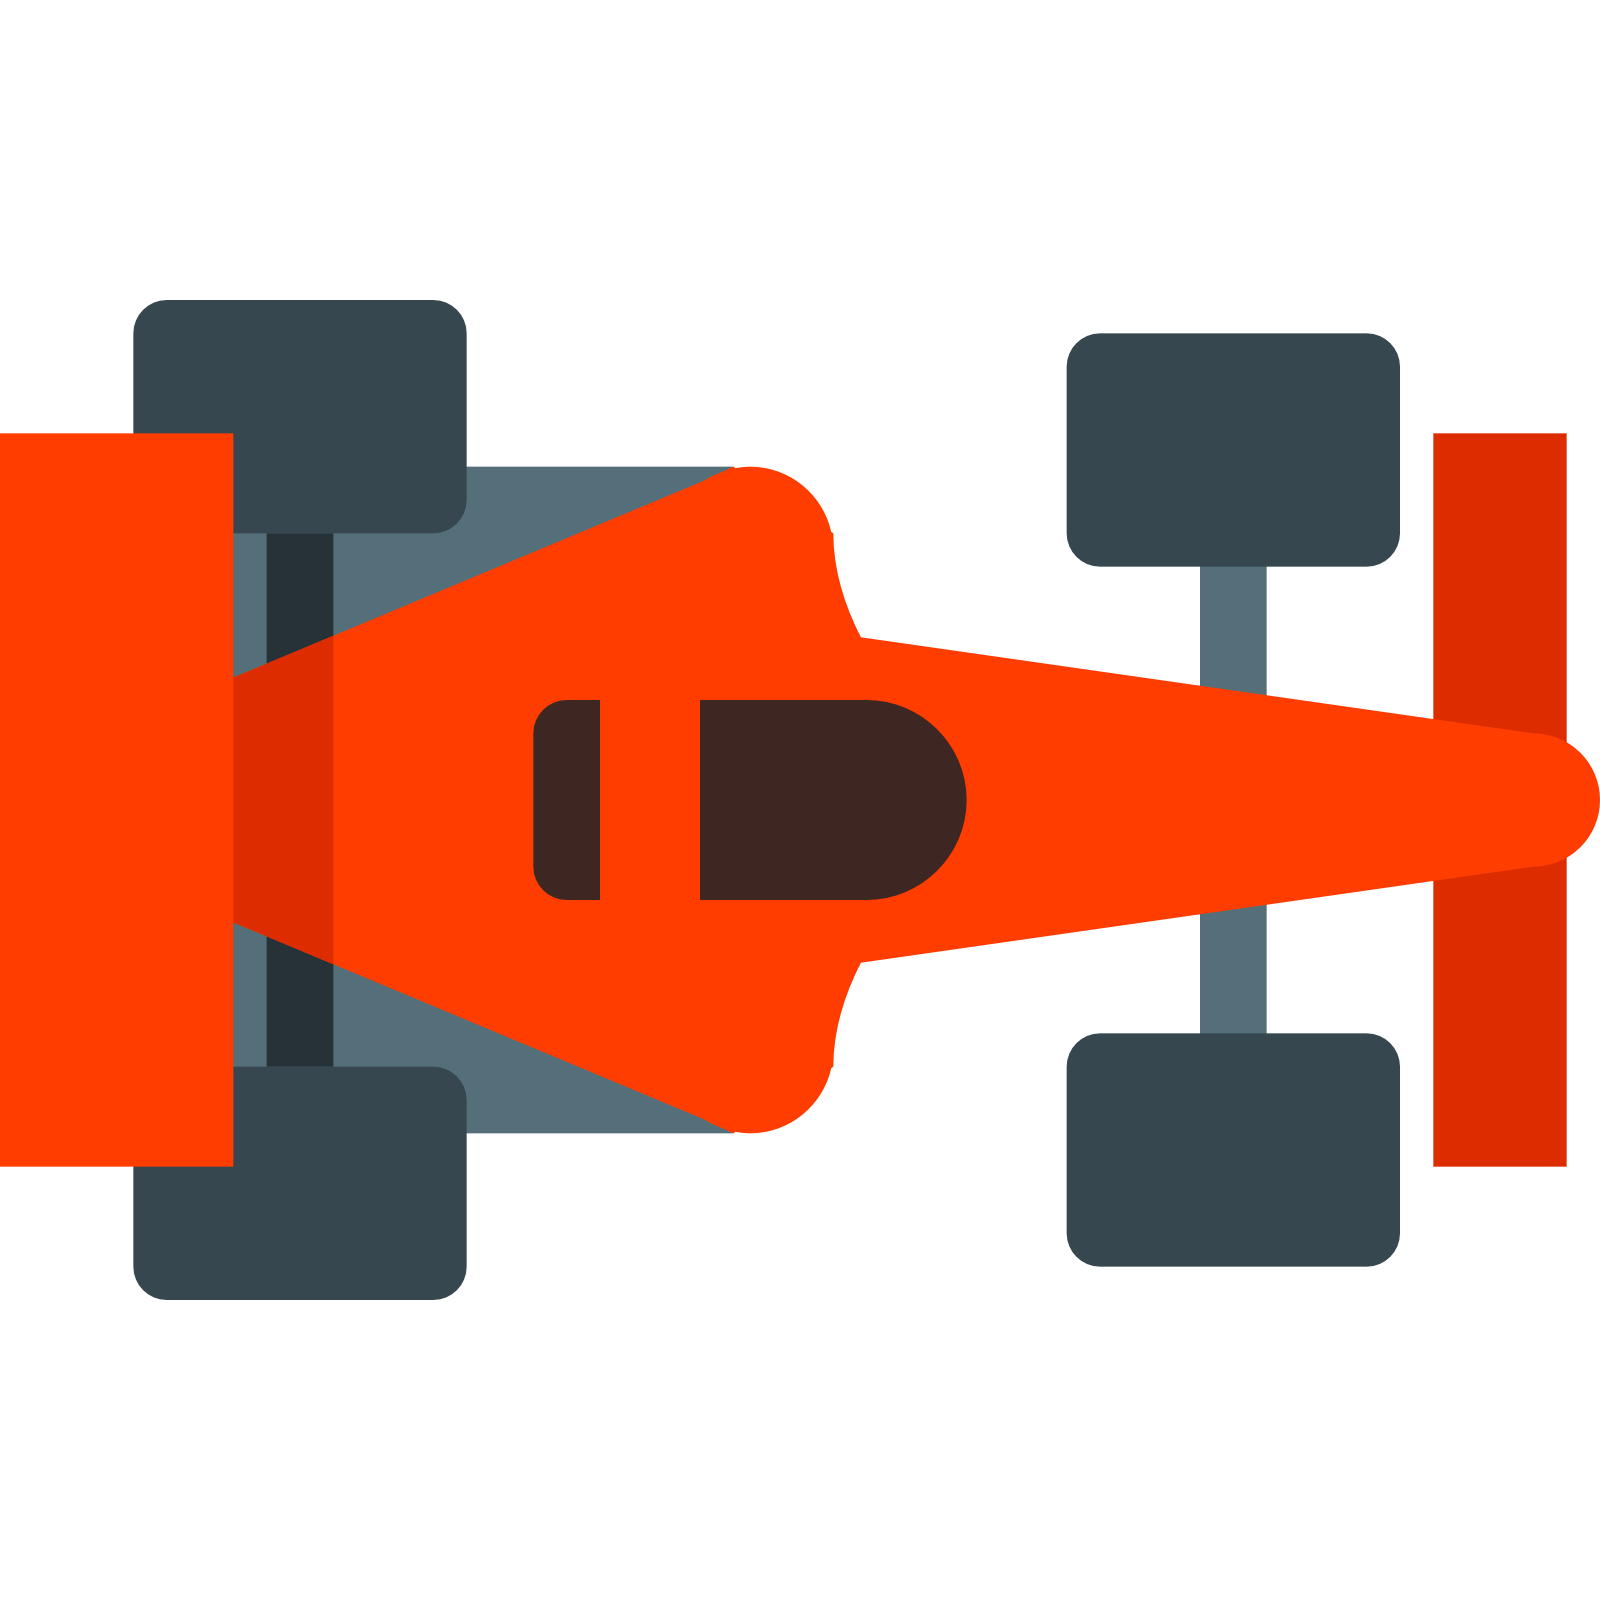 F1 Race Car Top Veiw Icon.